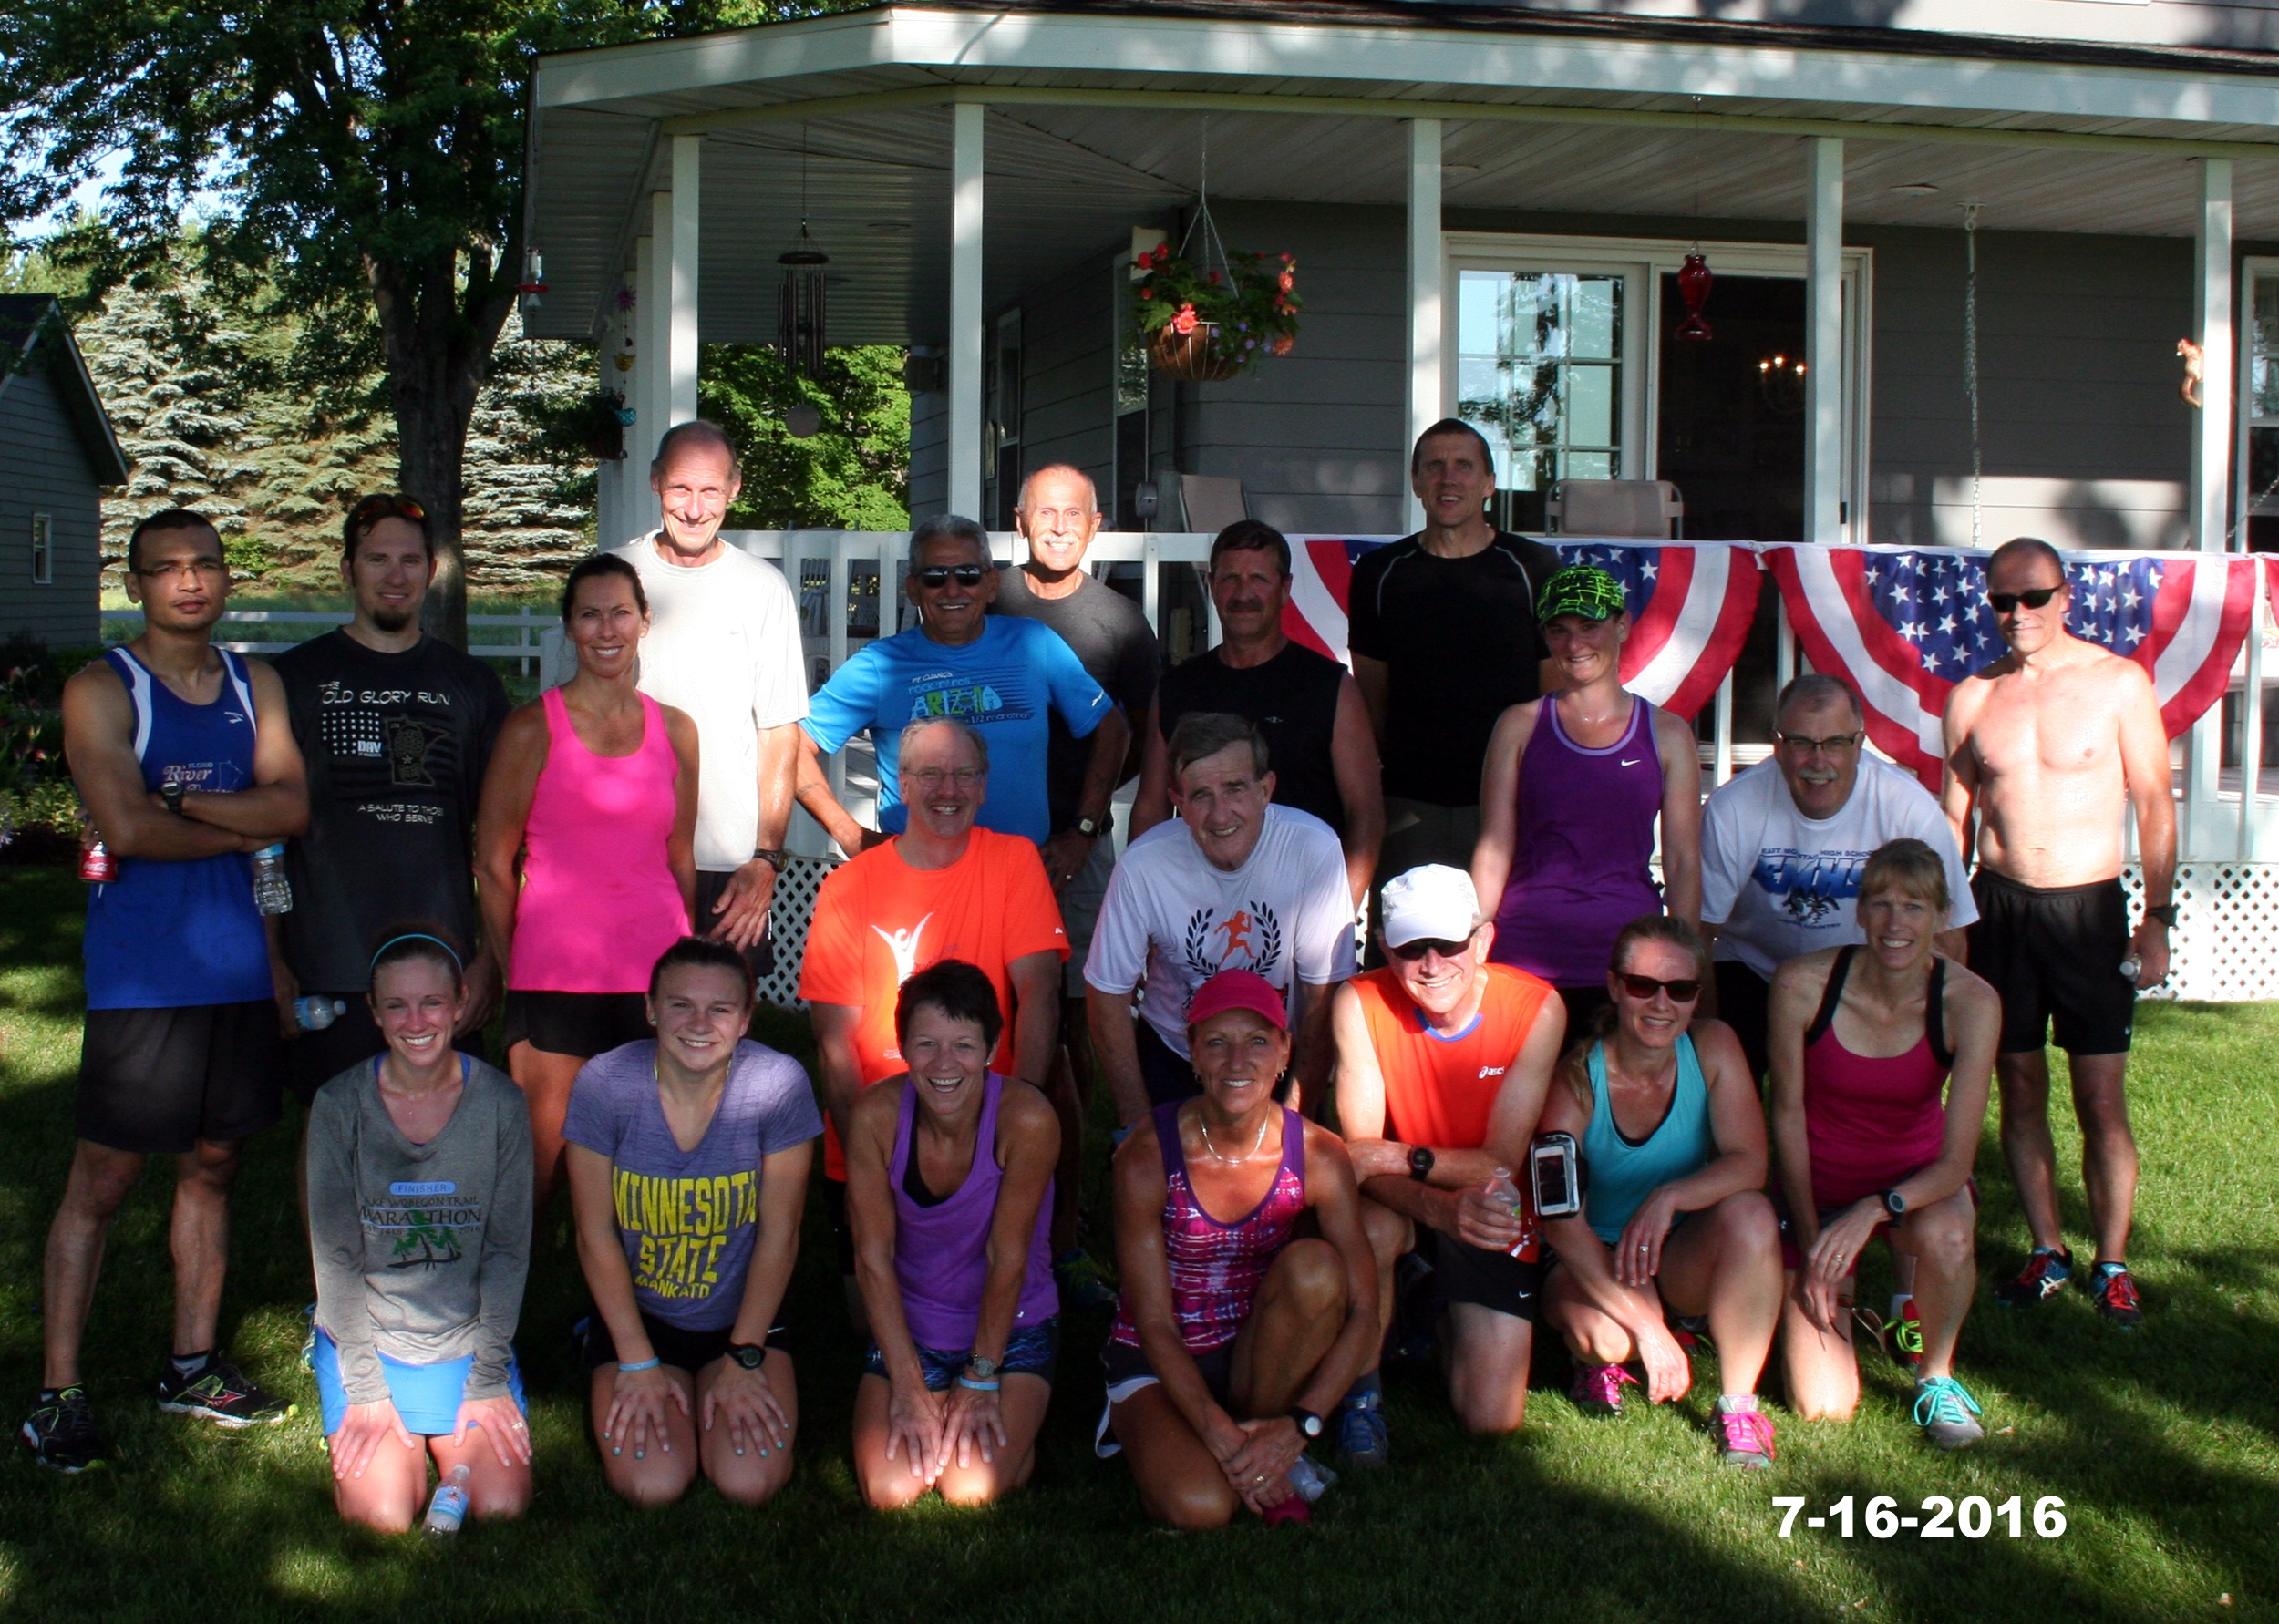 Breakfast Run 7-16-2016